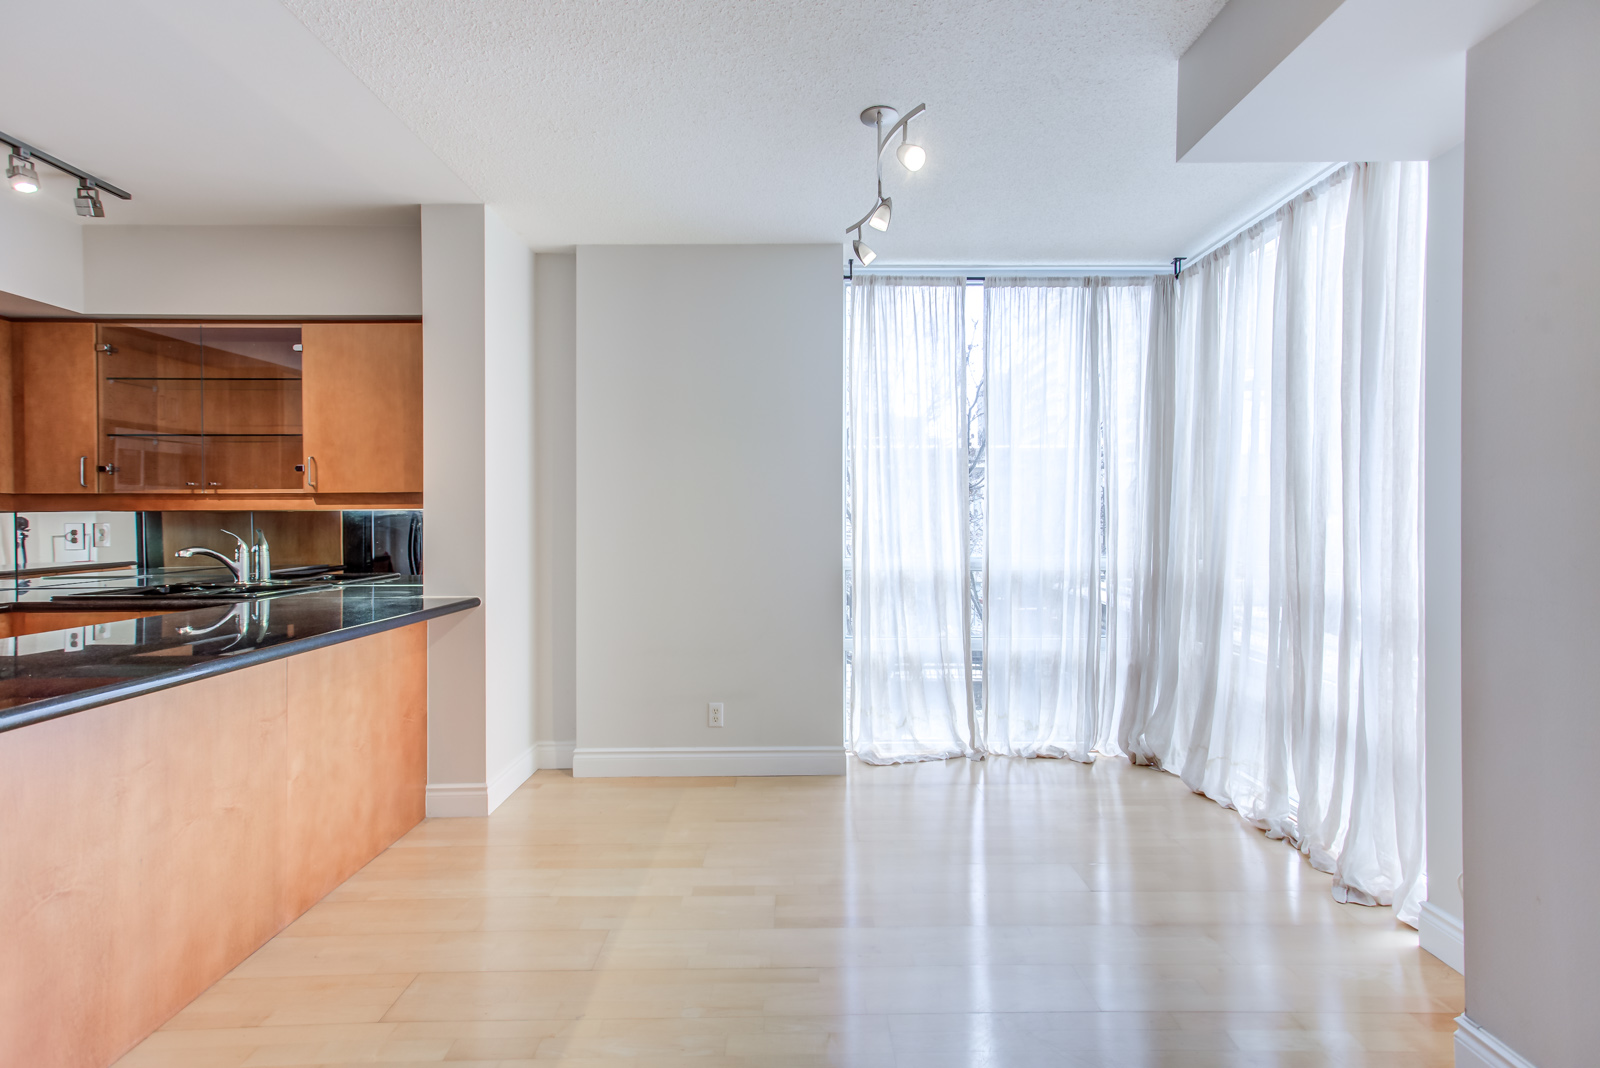 View of 20 Collier St Unit 408 kitchen on left and dining room on right with white curtains.